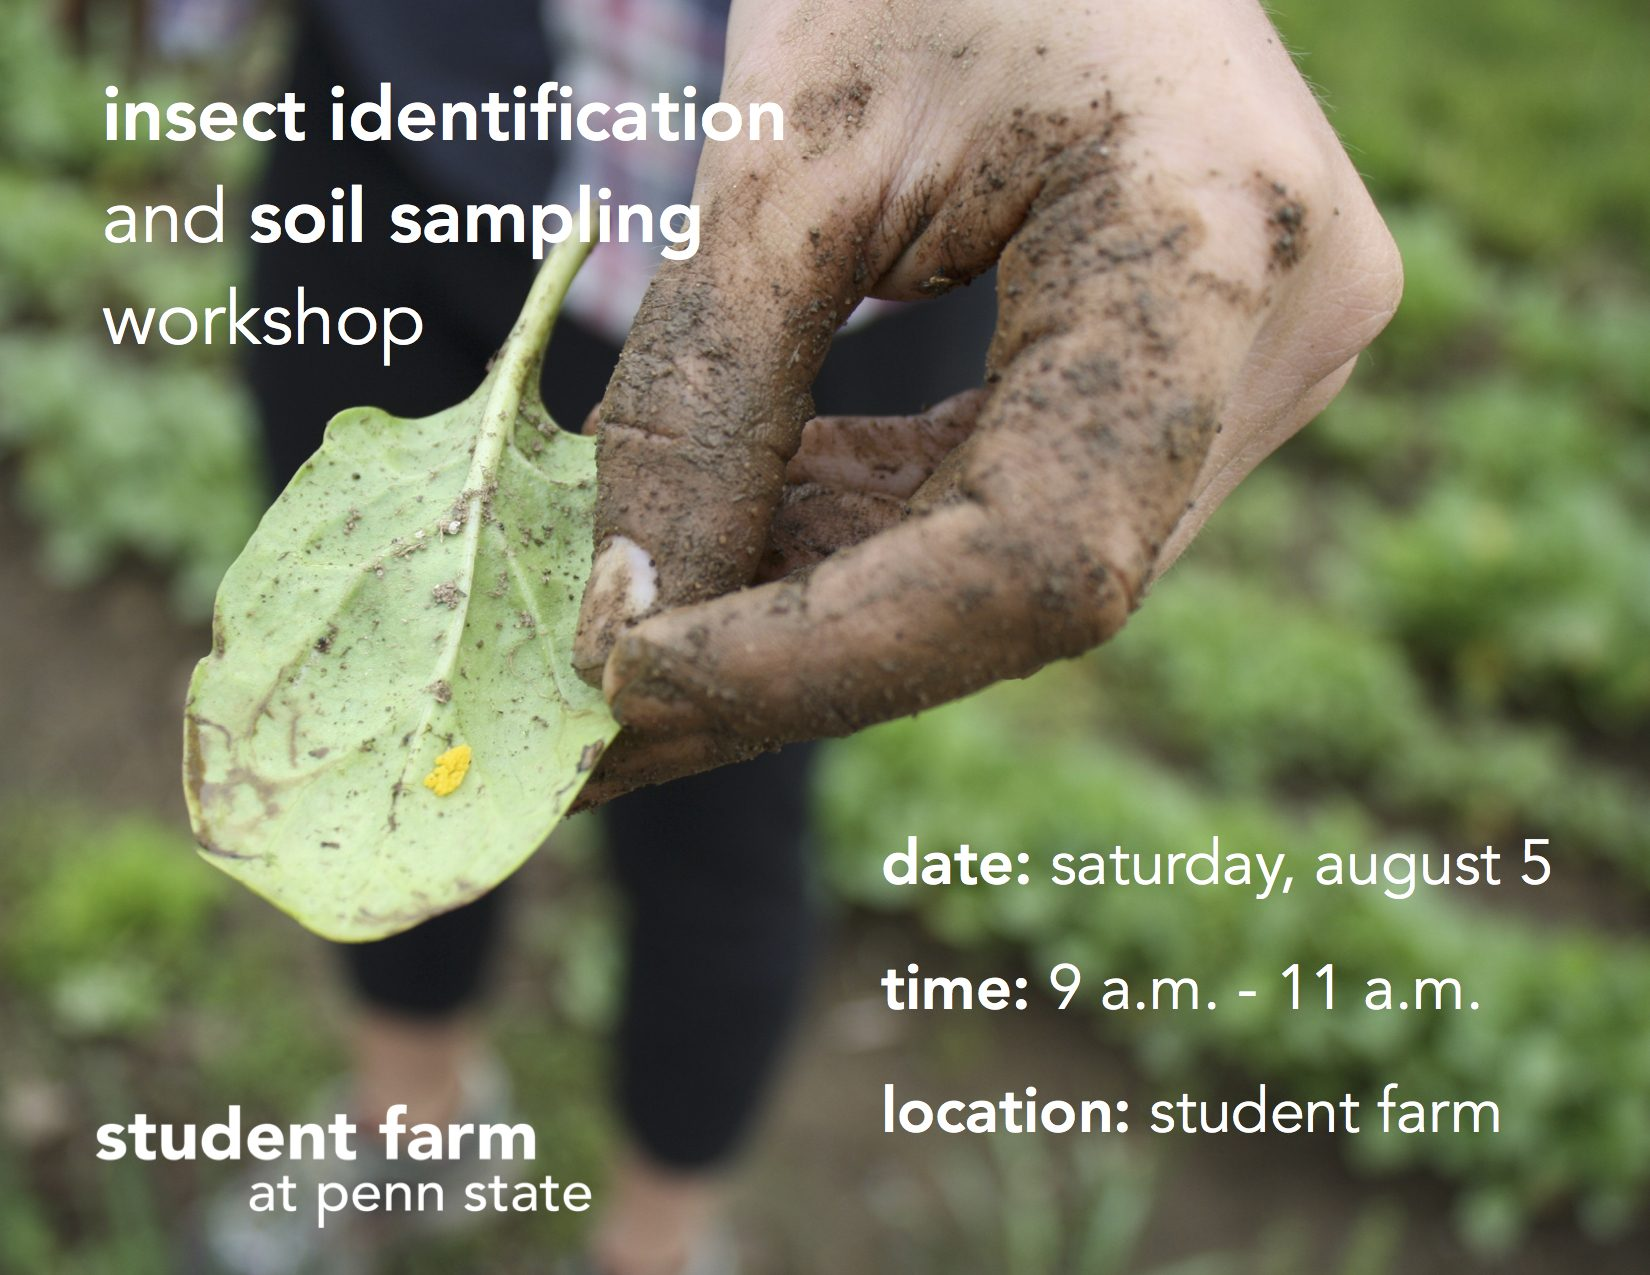 Insect Identification and Soil Sampling workshop